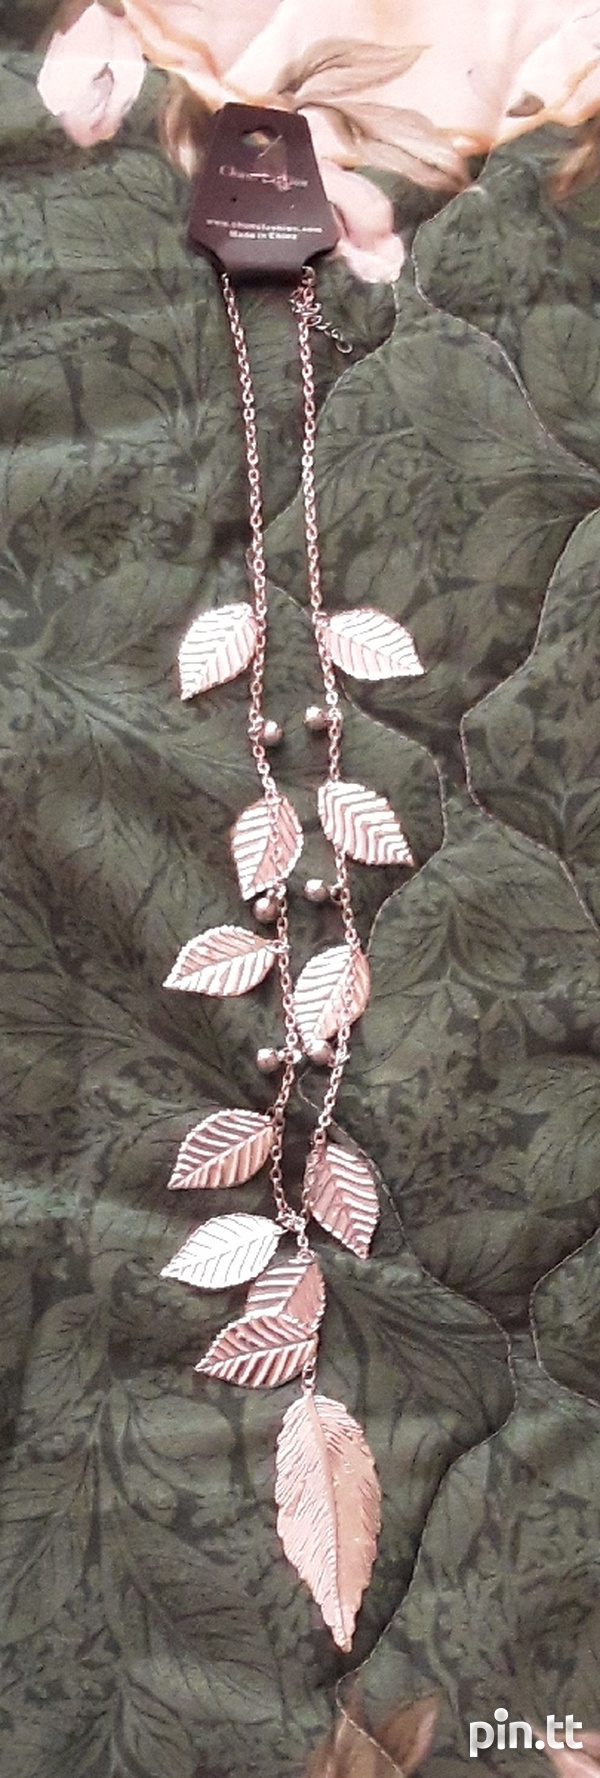 Silver Necklaces Costume Jewellery-6